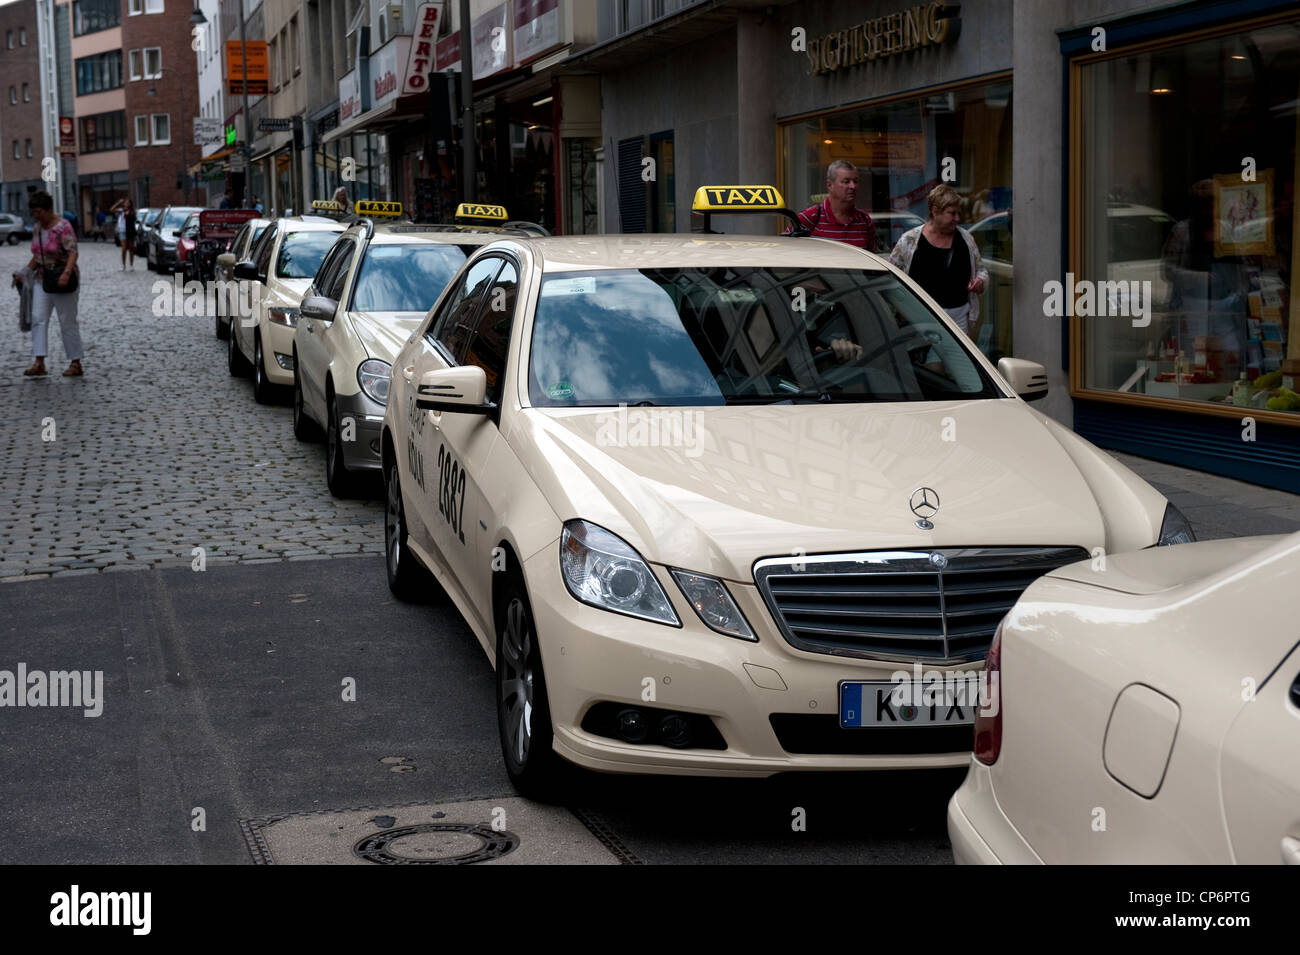 mercedes taxi cab car rank queue cologne germany europe eu stock photo royalty free image. Black Bedroom Furniture Sets. Home Design Ideas